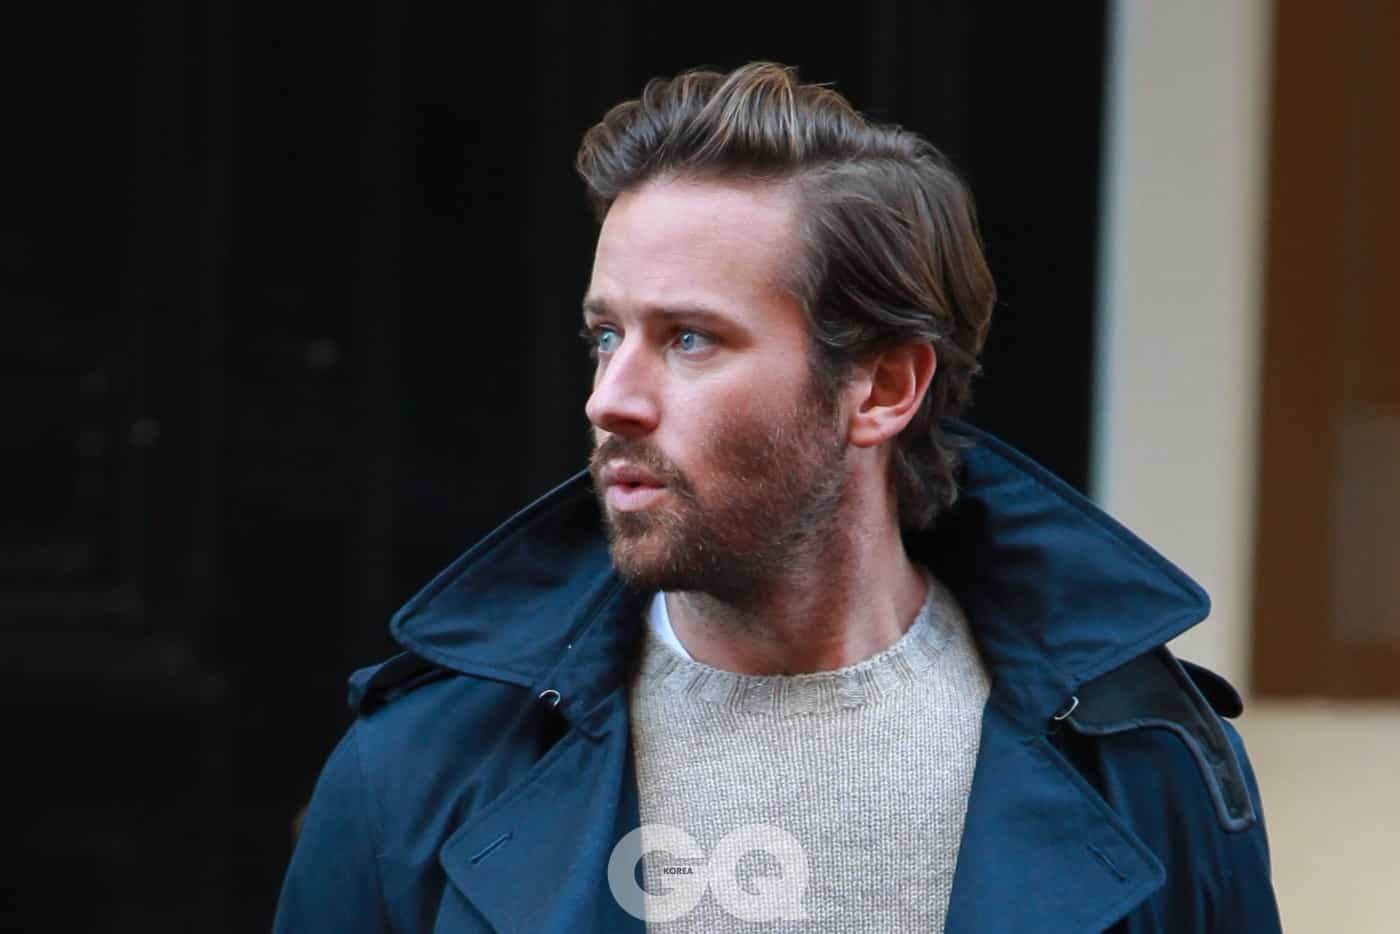 Armie Hammer seen leaving the Claridges Hotel after promoting his latest film 'Free Fire' which will close the London Film Festival - London Pictured: Armie Hammer Ref: SPL1371856  111016   Picture by: Splash News Splash News and Pictures Los Angeles:310-821-2666 New York:212-619-2666 London:870-934-2666 photodesk@splashnews.com